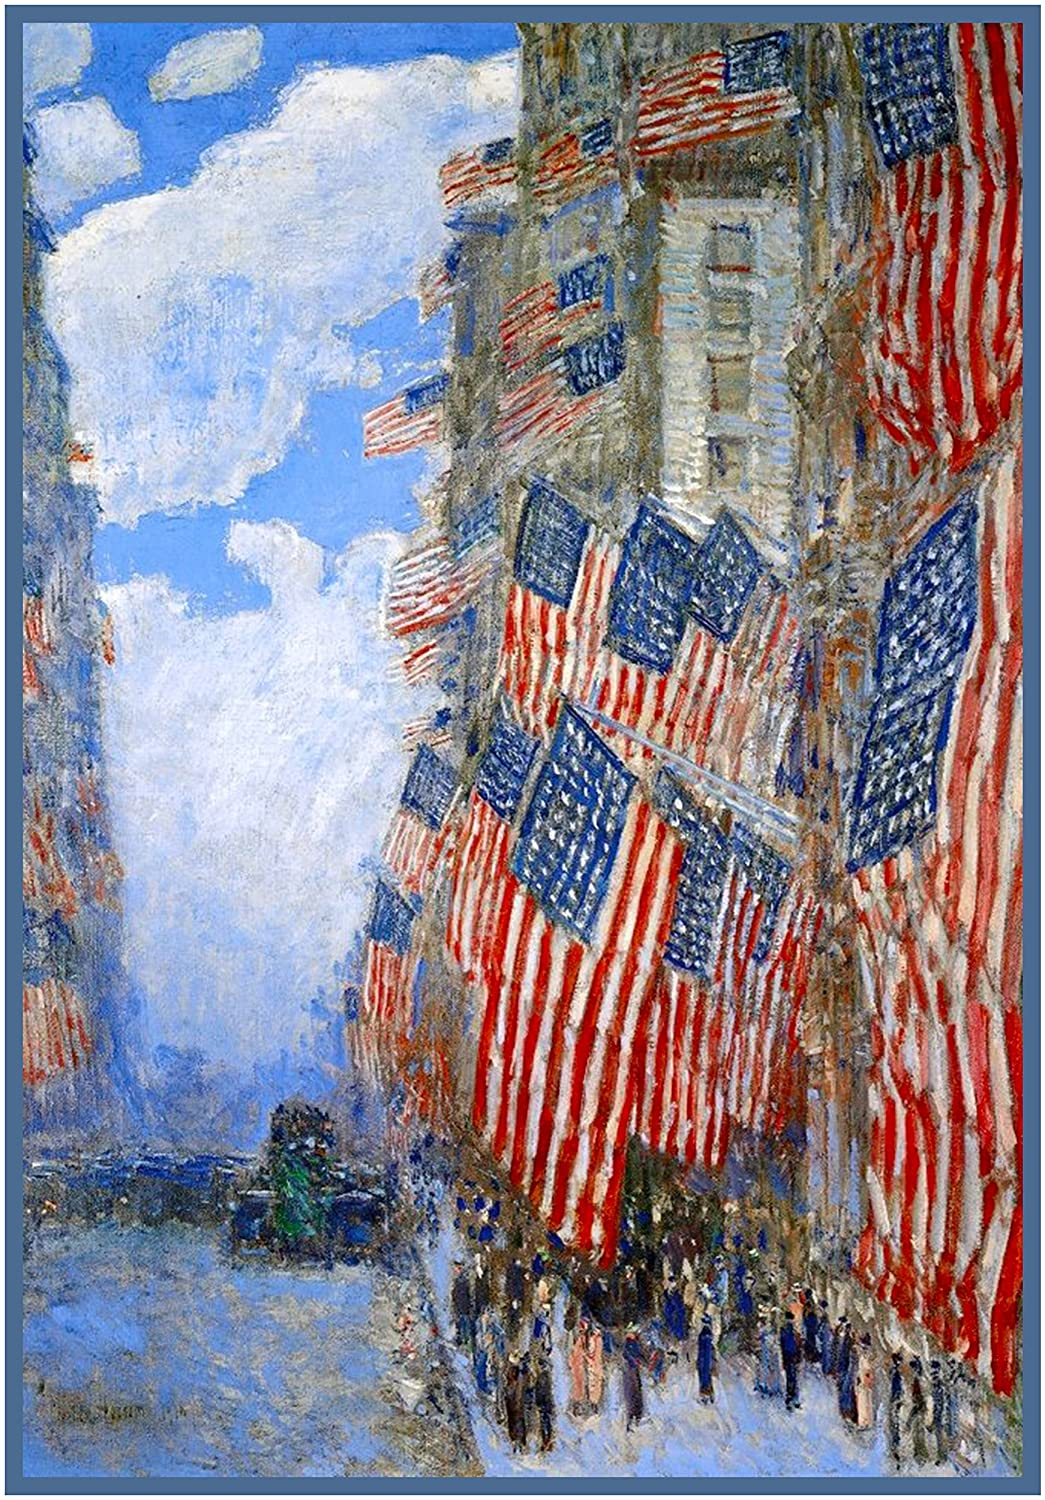 Orenco Originals American Flags on July 4th American Impressionist Painter Childe Hassam Counted Cross Stitch Pattern